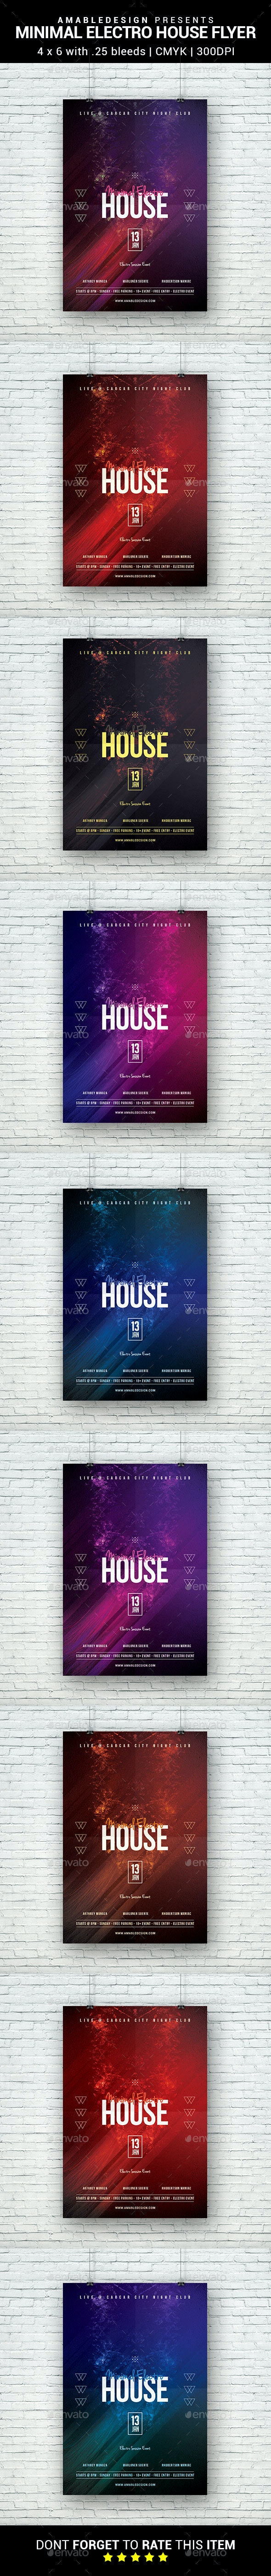 Minimal Electro House Flyer - Clubs & Parties Events